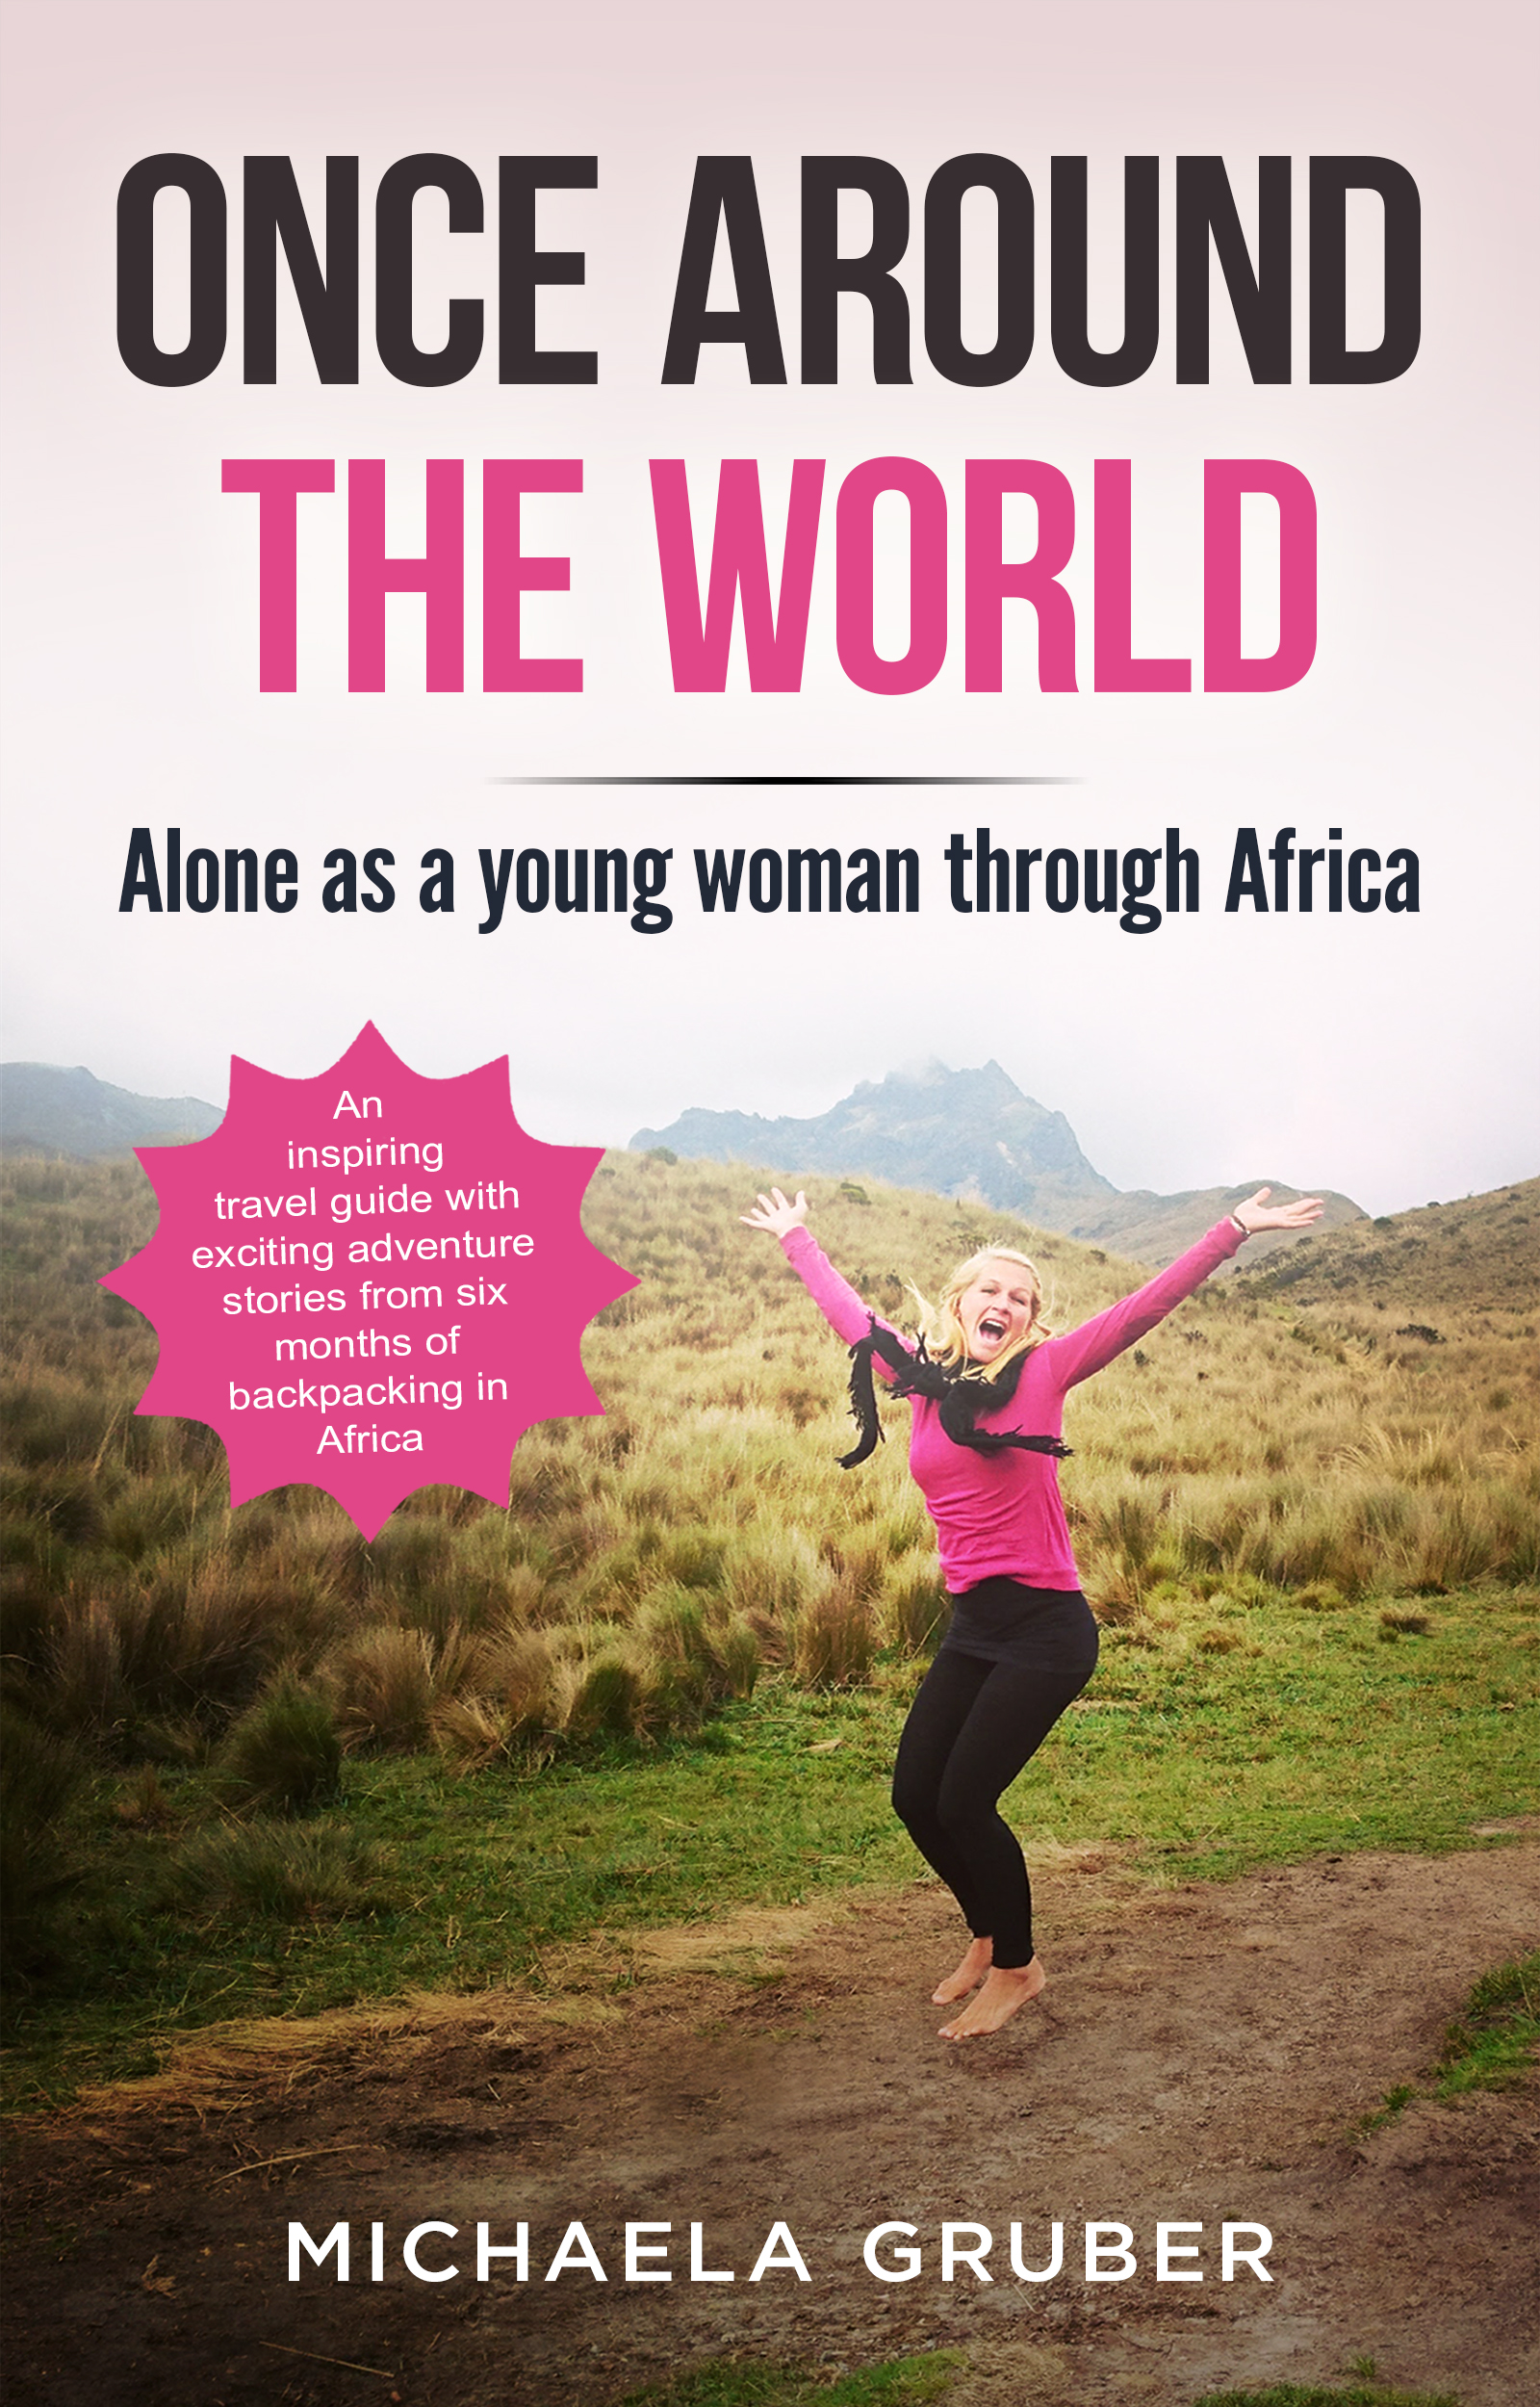 Michaela Gruber – Once around the world – Alone as a young woman through Africa